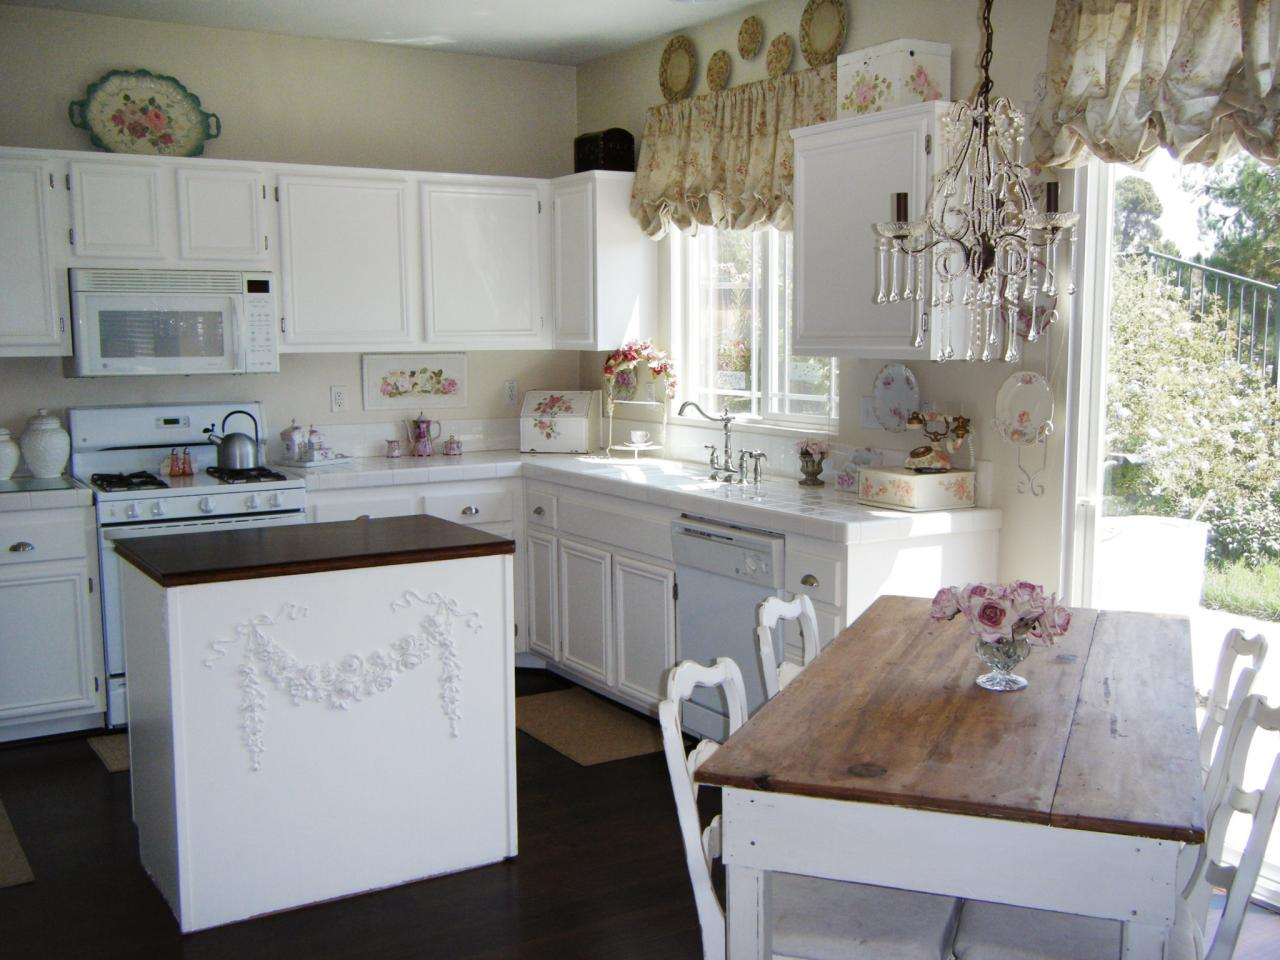 Country kitchen design pictures ideas tips from hgtv for Country kitchen floor ideas